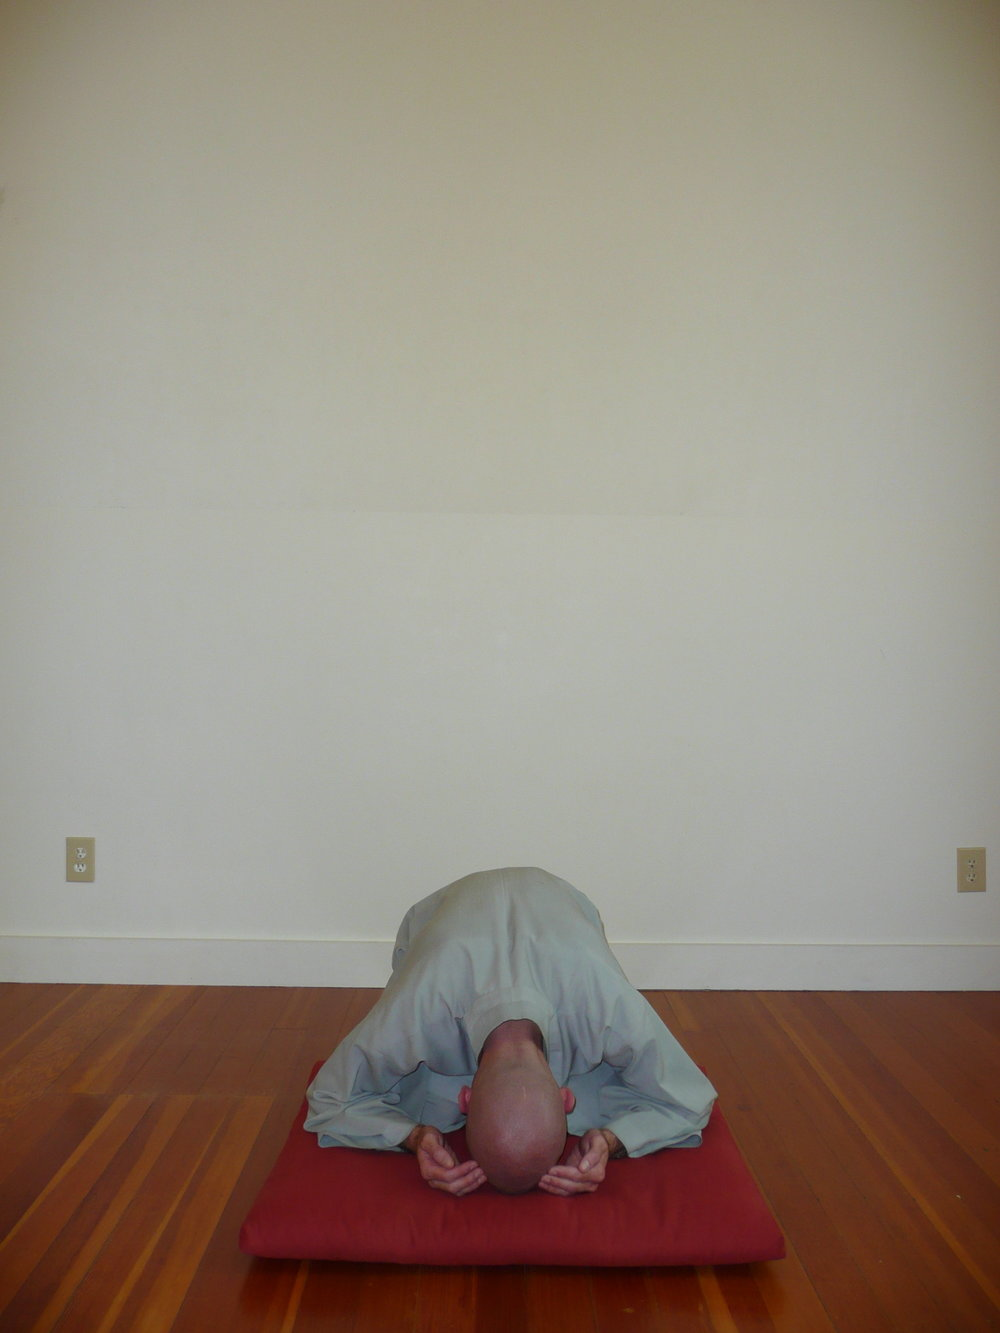 4. Rock back and down so that your rear is touching your heels and your forehead is touching the floor. In this position, your hands should be turned over (palms up), touching the mat next to your ears and your left foot should be crossed over the right one. Remain for a moment in this position. -